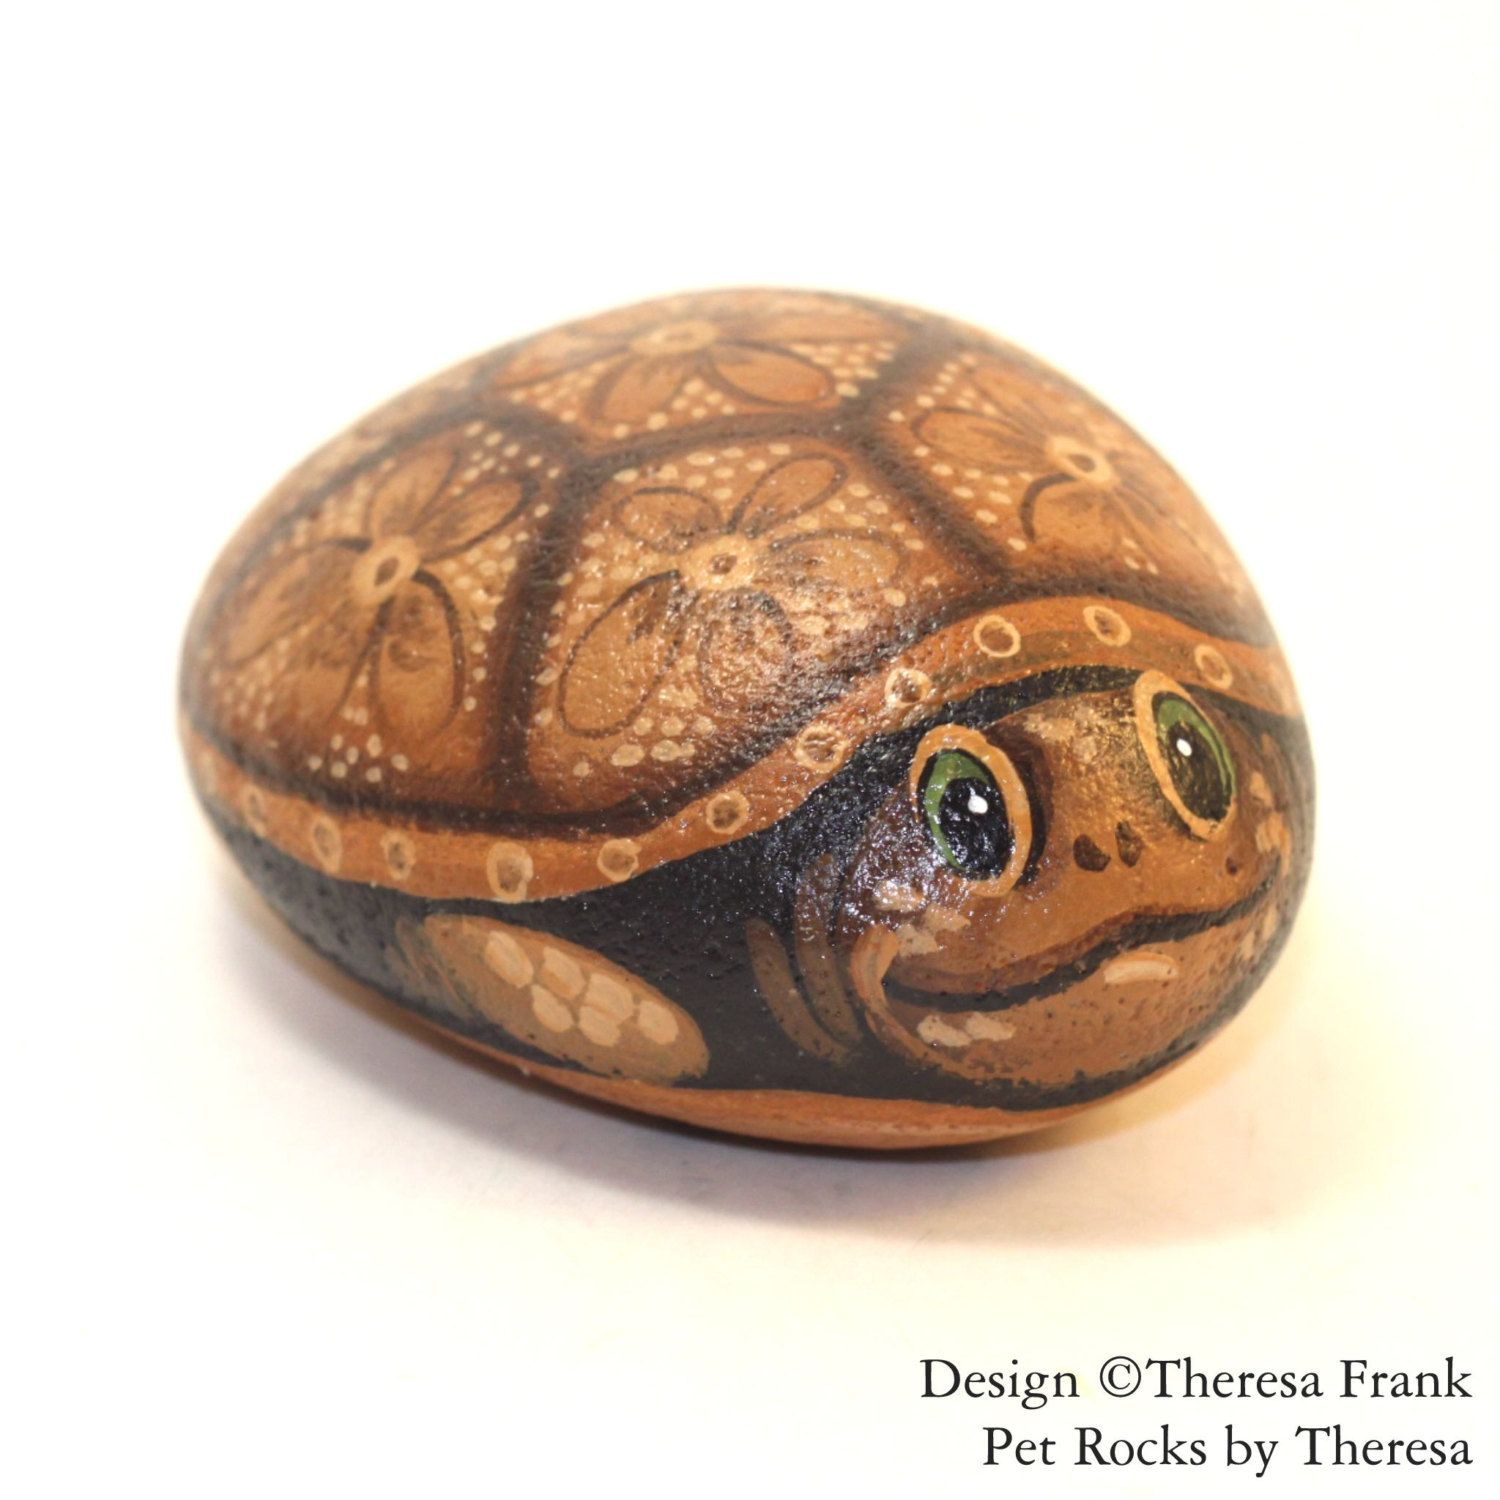 Painted Turtle Rock   Painted Rocks   Turtle Rock   Hand Painted Turtle  Rock   Garden Decor   Turtle Garden Decor   Turtle   Turtle Art By  PetRocksbyTheresa ...